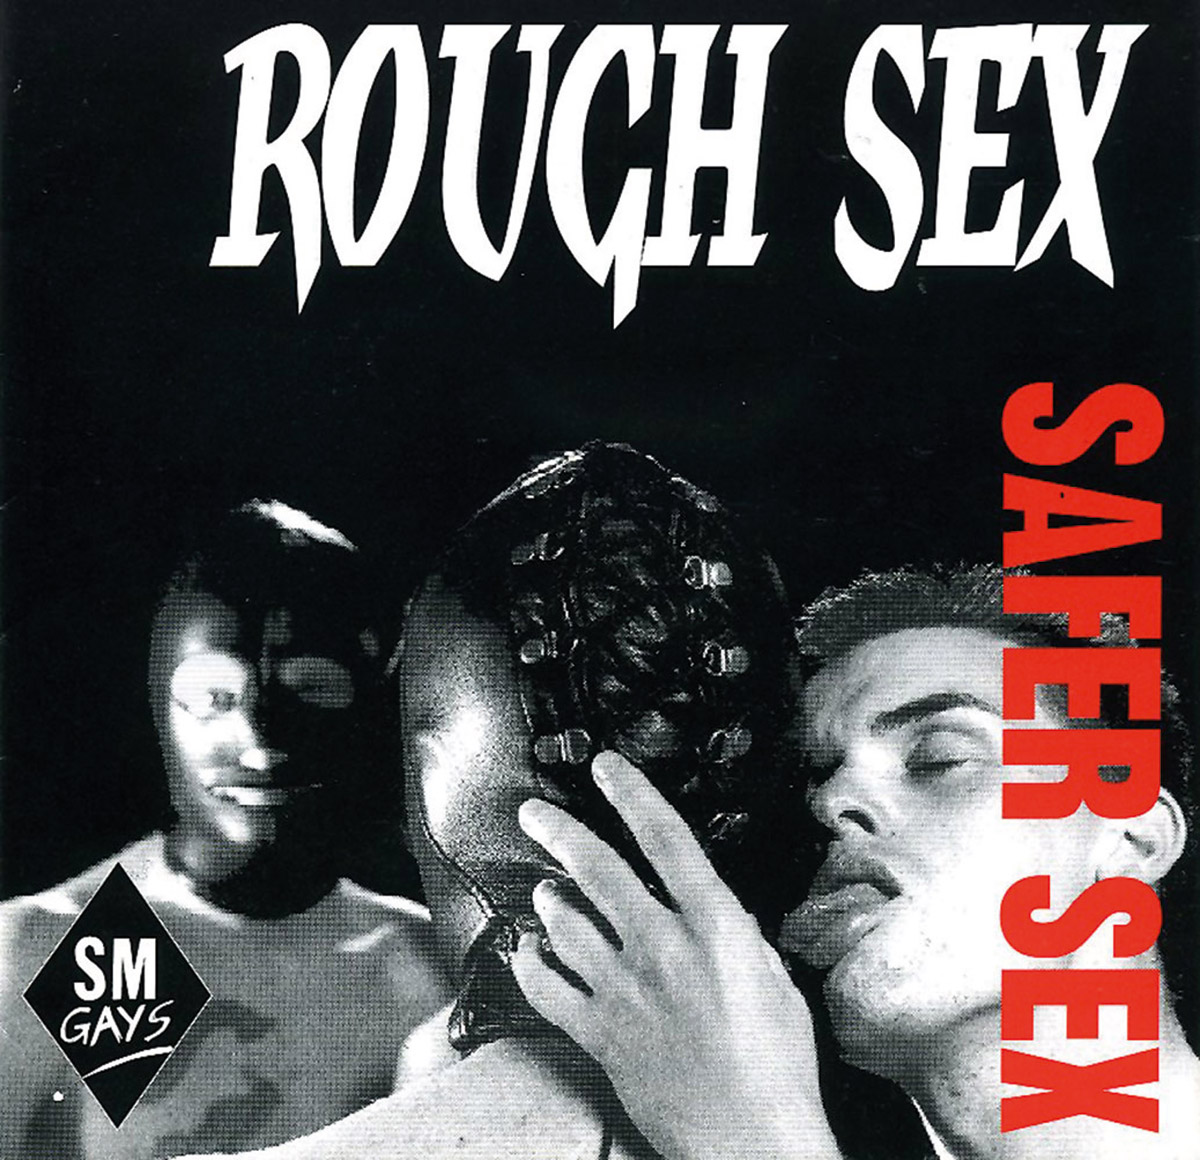 SM Gays, Rough Sex Safer Sex, 1997: Booklet. © SM Gays.